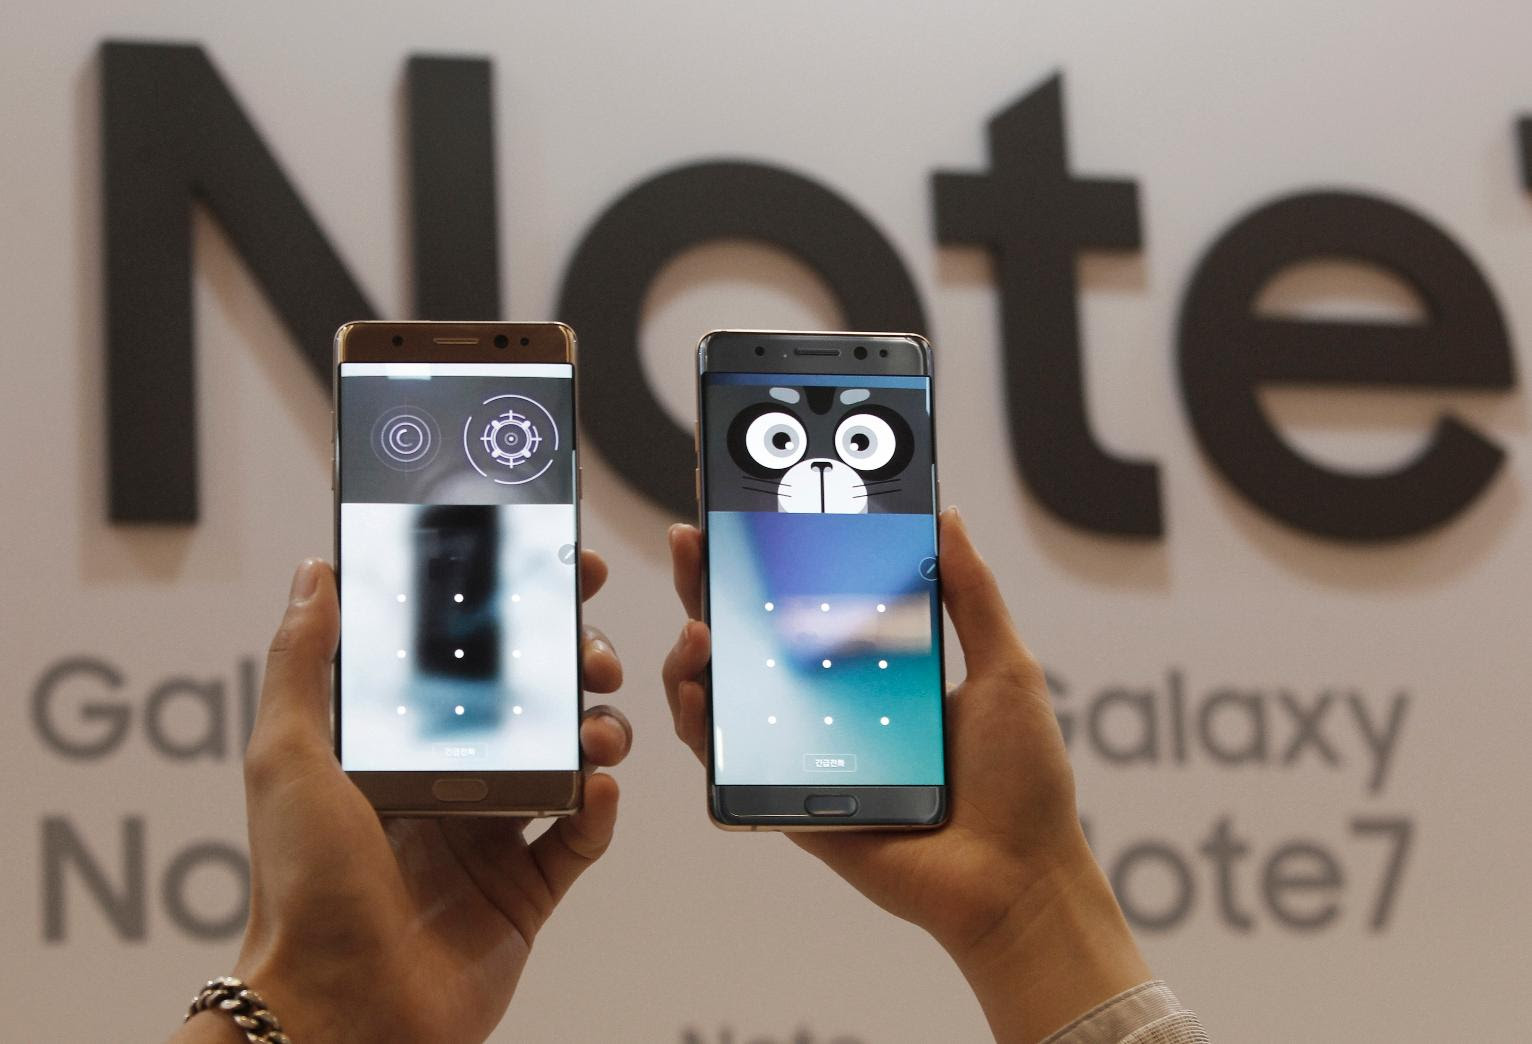 Galaxy Note 7 Recalled by Samsung After Battery Explosions